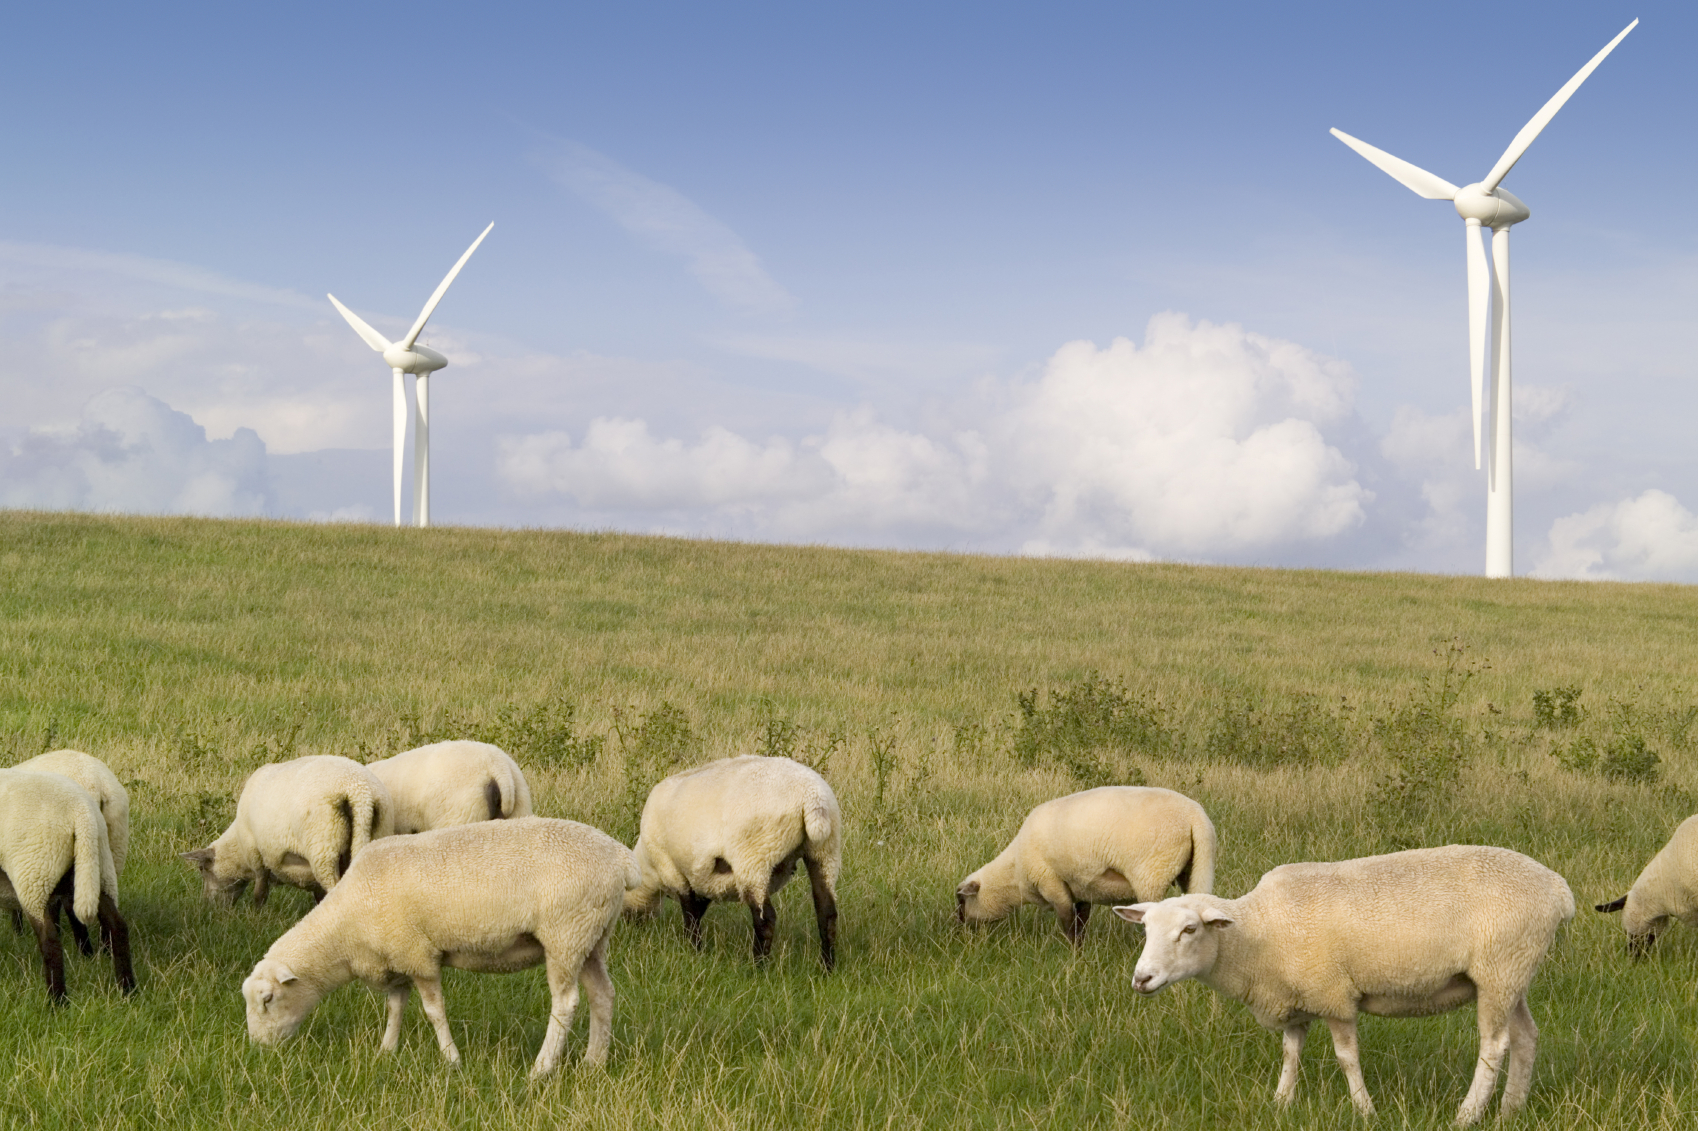 Rural communities to come together to shape own sustainable energy plans